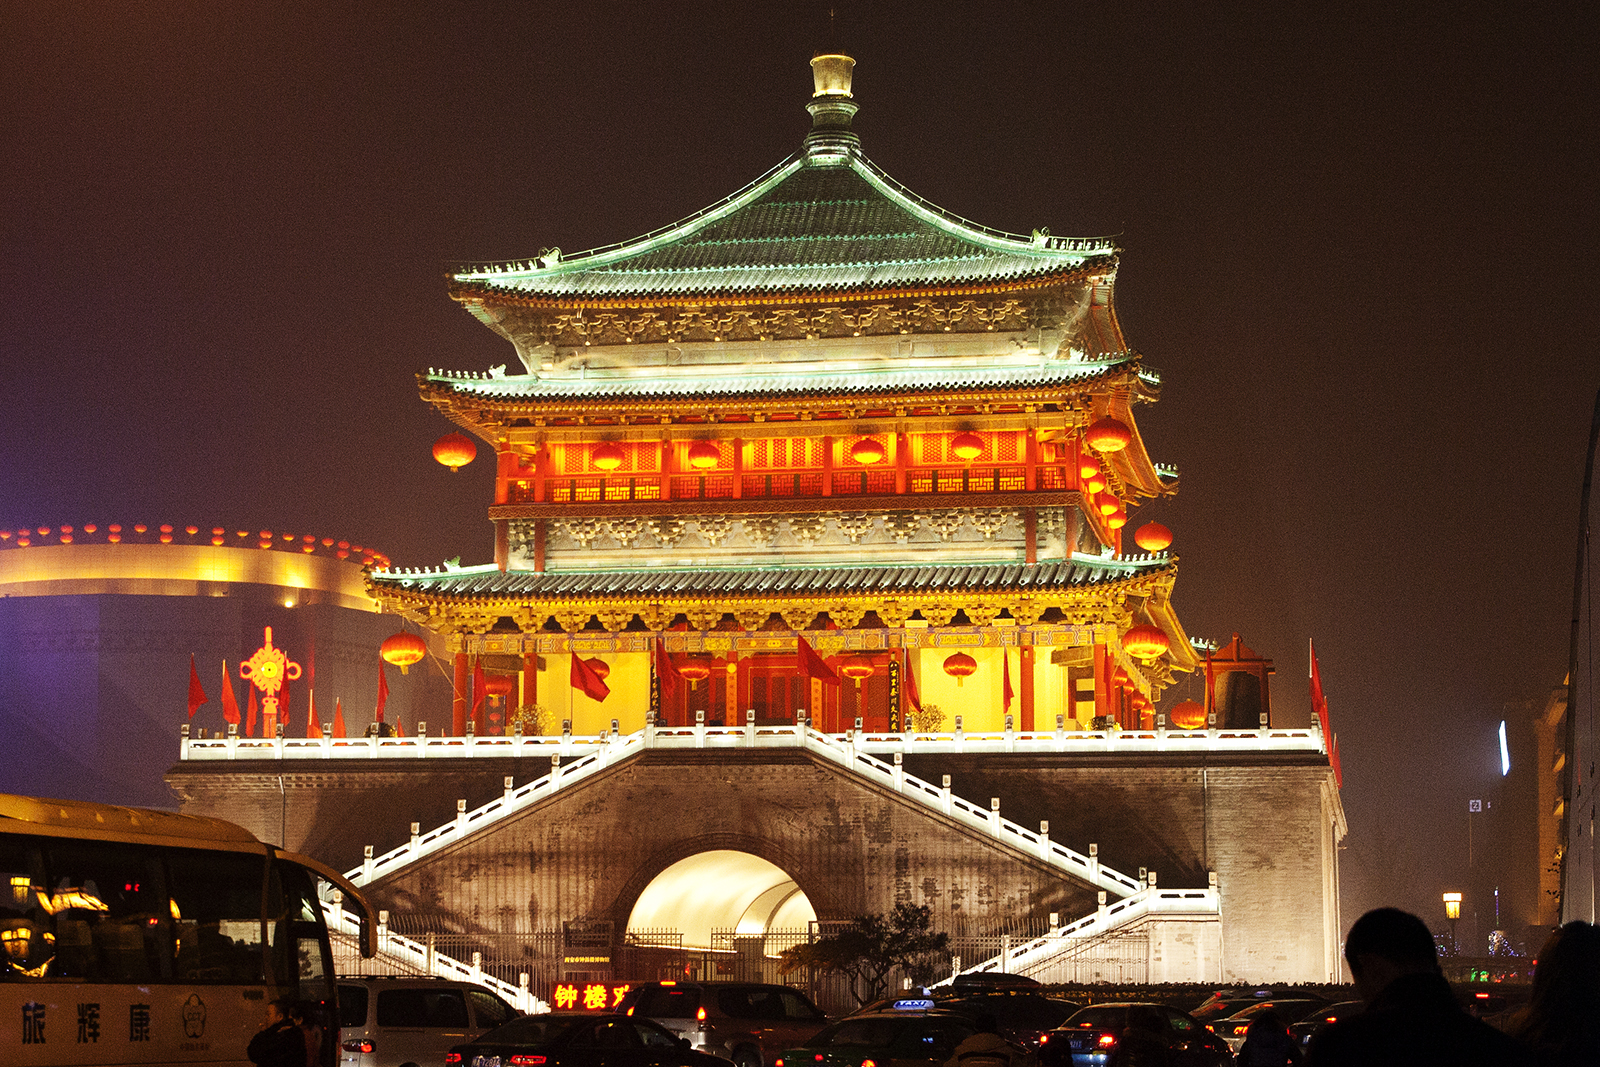 Ides is expanding in China by opening office in Xi'an ...